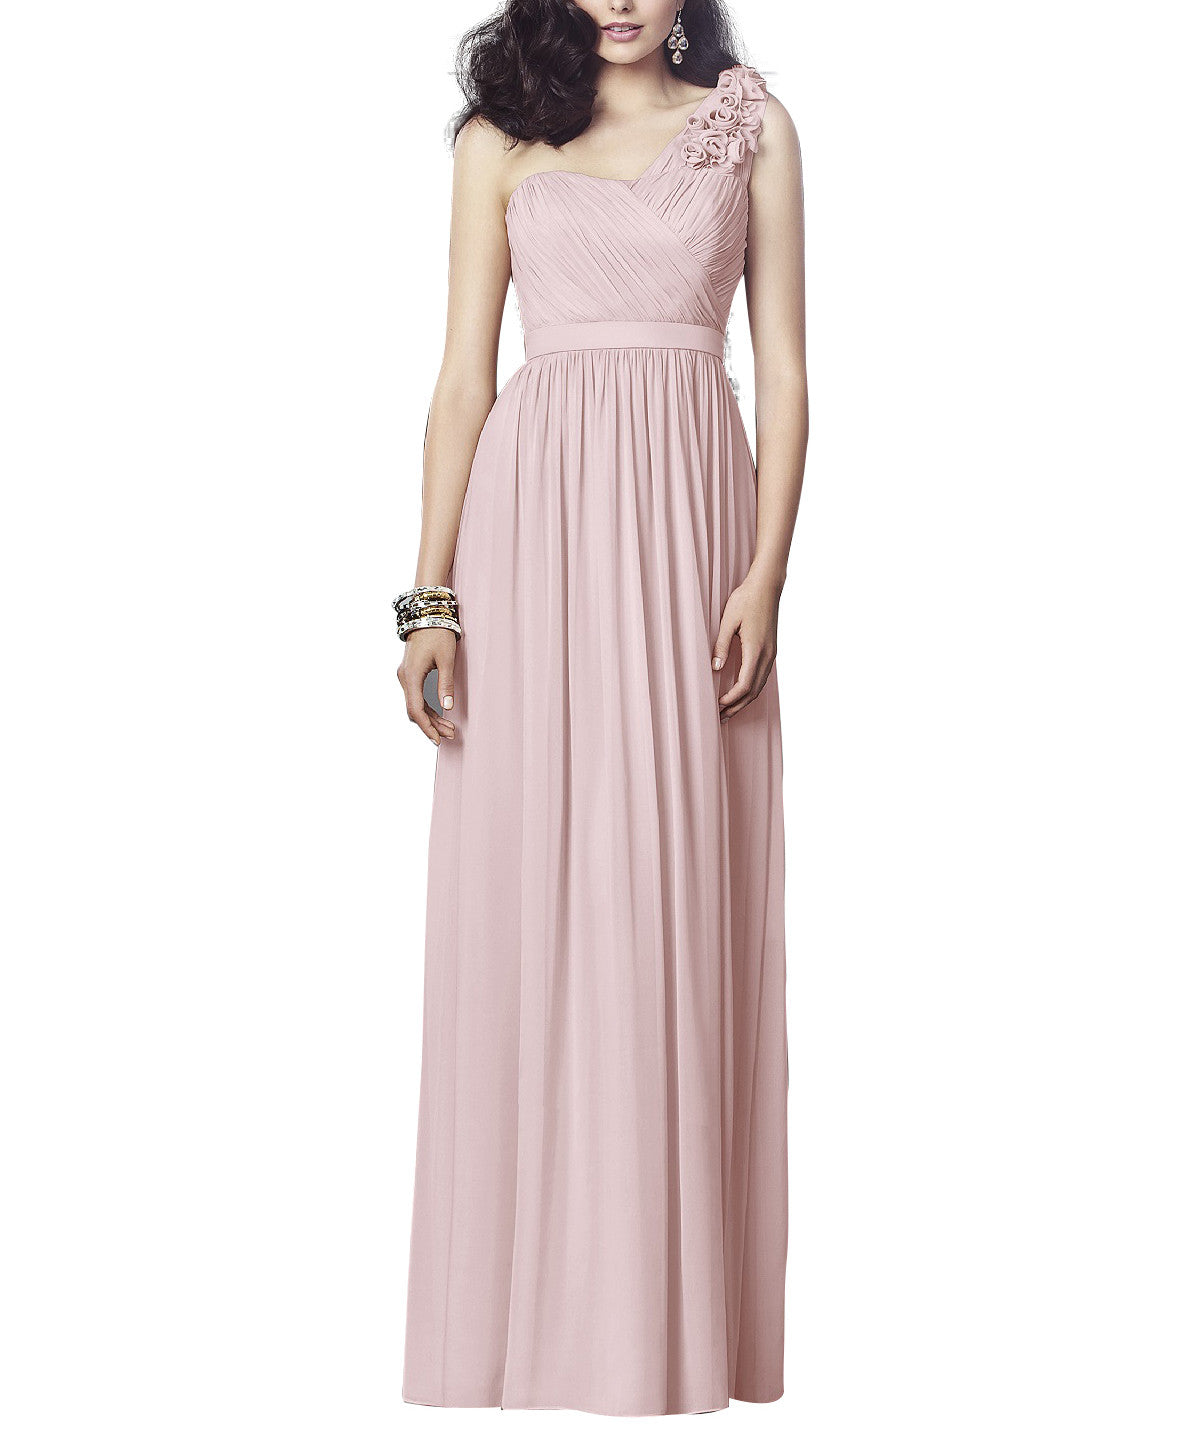 Dessy collection style 2909 bridesmaid dress brideside dessy collection style 2909 ombrellifo Gallery